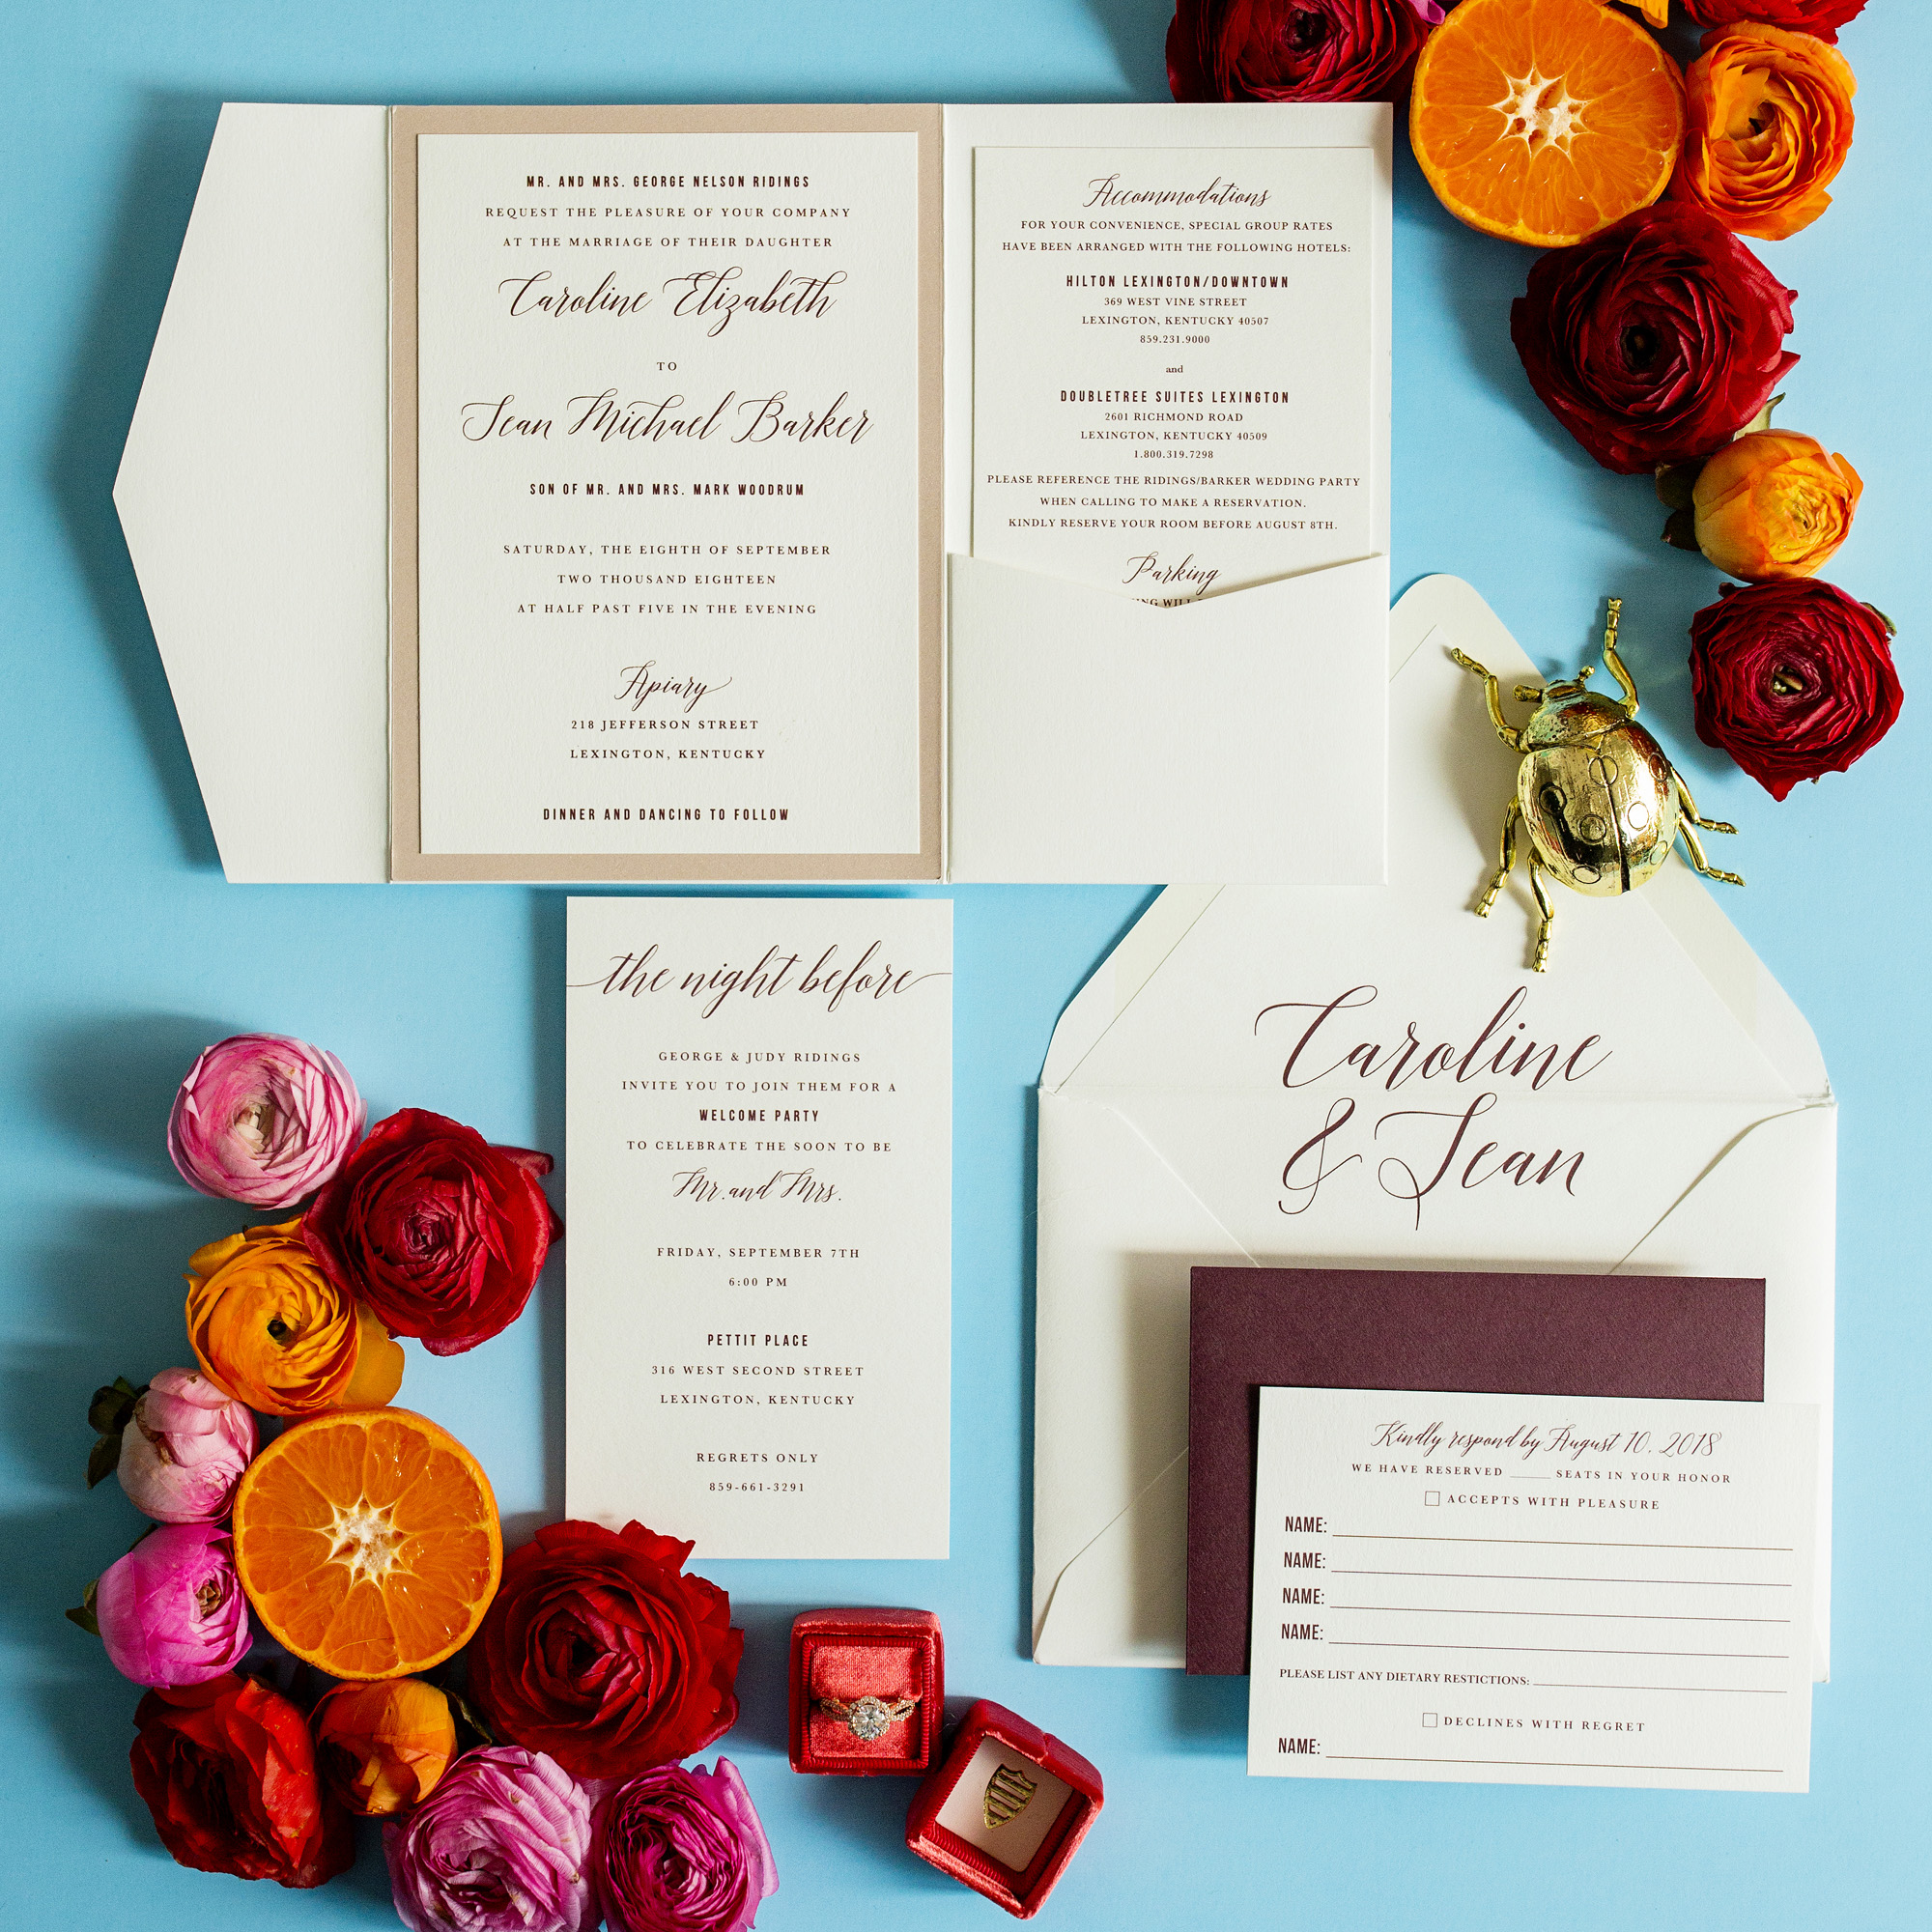 Seriously_Sabrina_Photography_Commercial_Simply_Done_Invites_2019_March_146